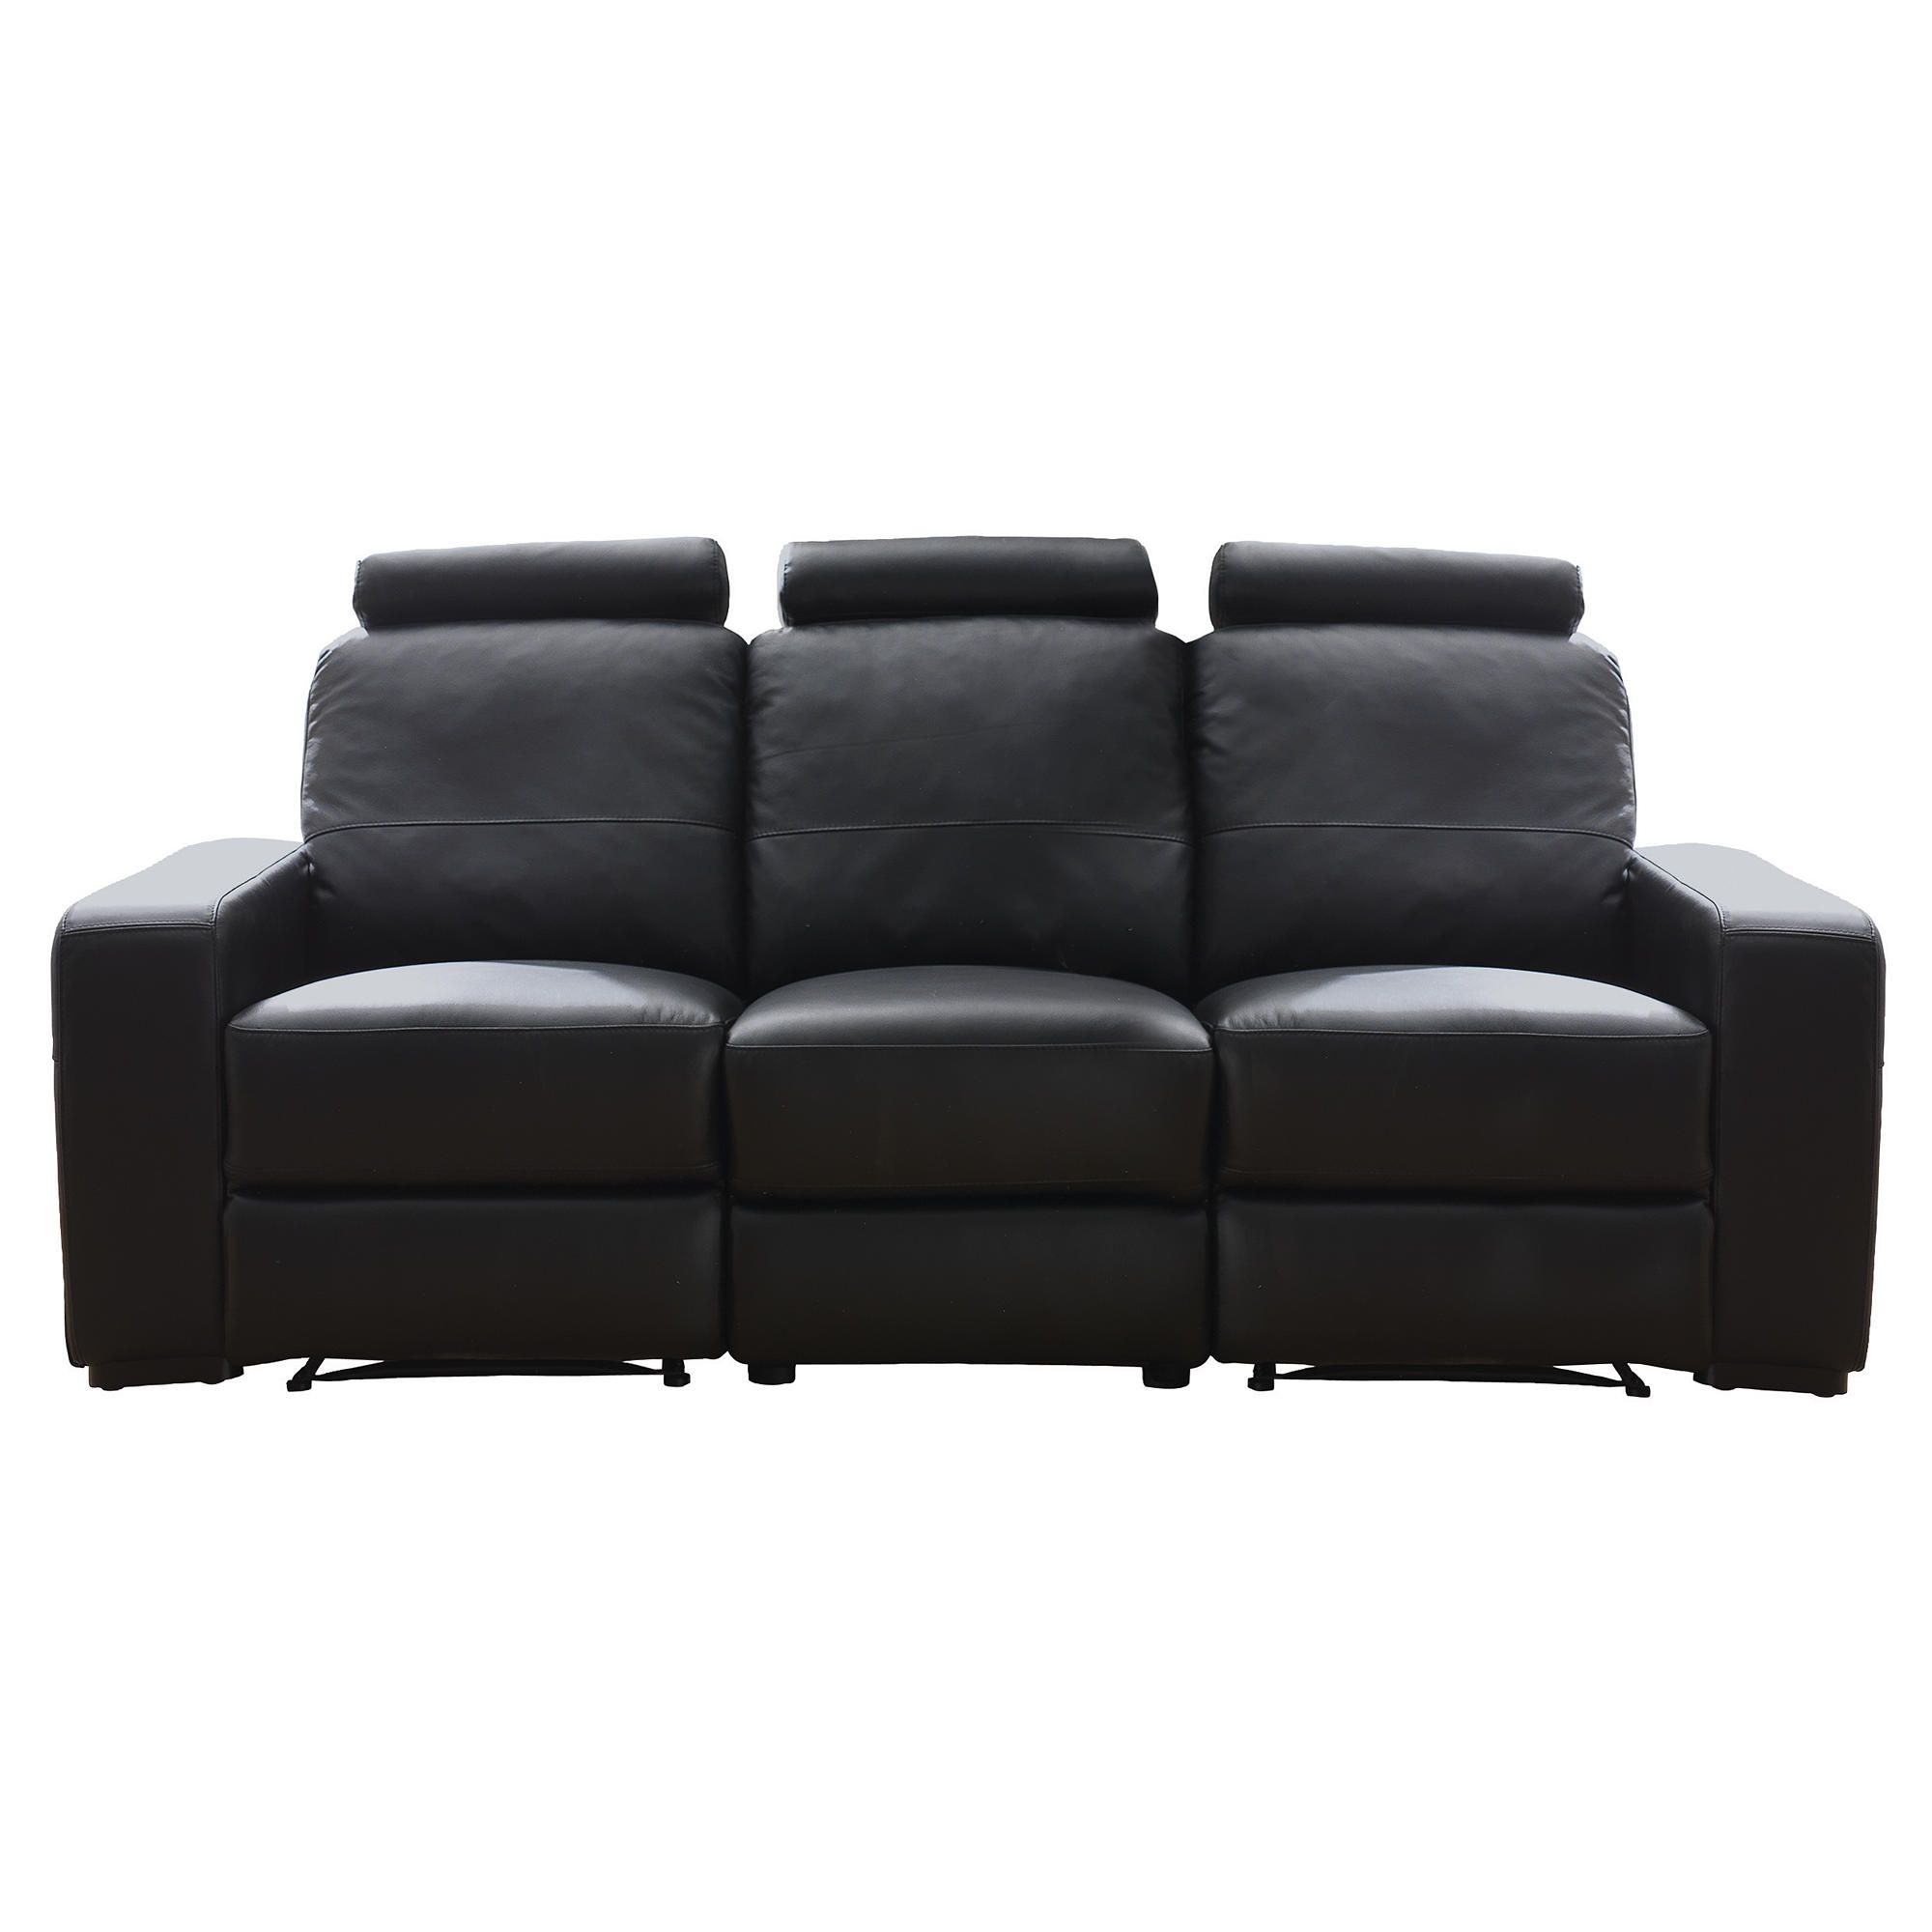 Barcelona Leather Large Recliner Sofa Black at Tesco Direct